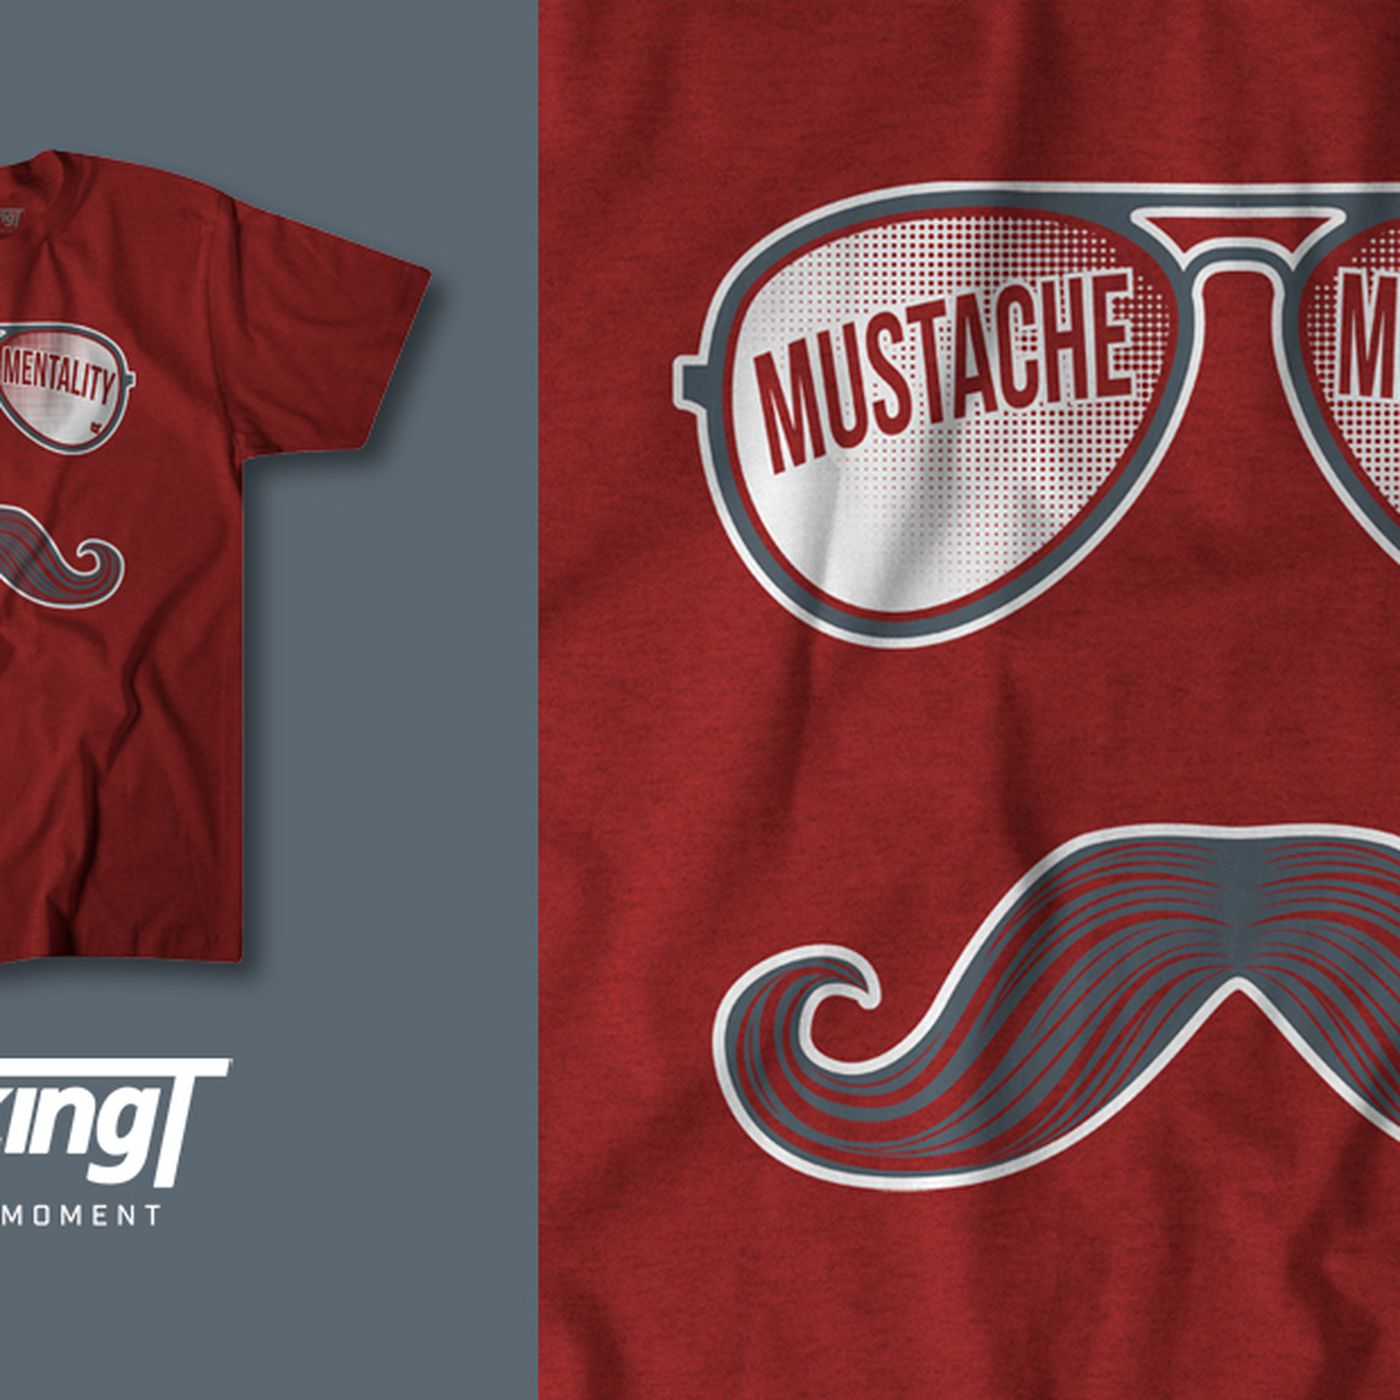 78e86218 Last chance to get your 'Mustache Mentality' and GameDay shirts! -  CougCenter